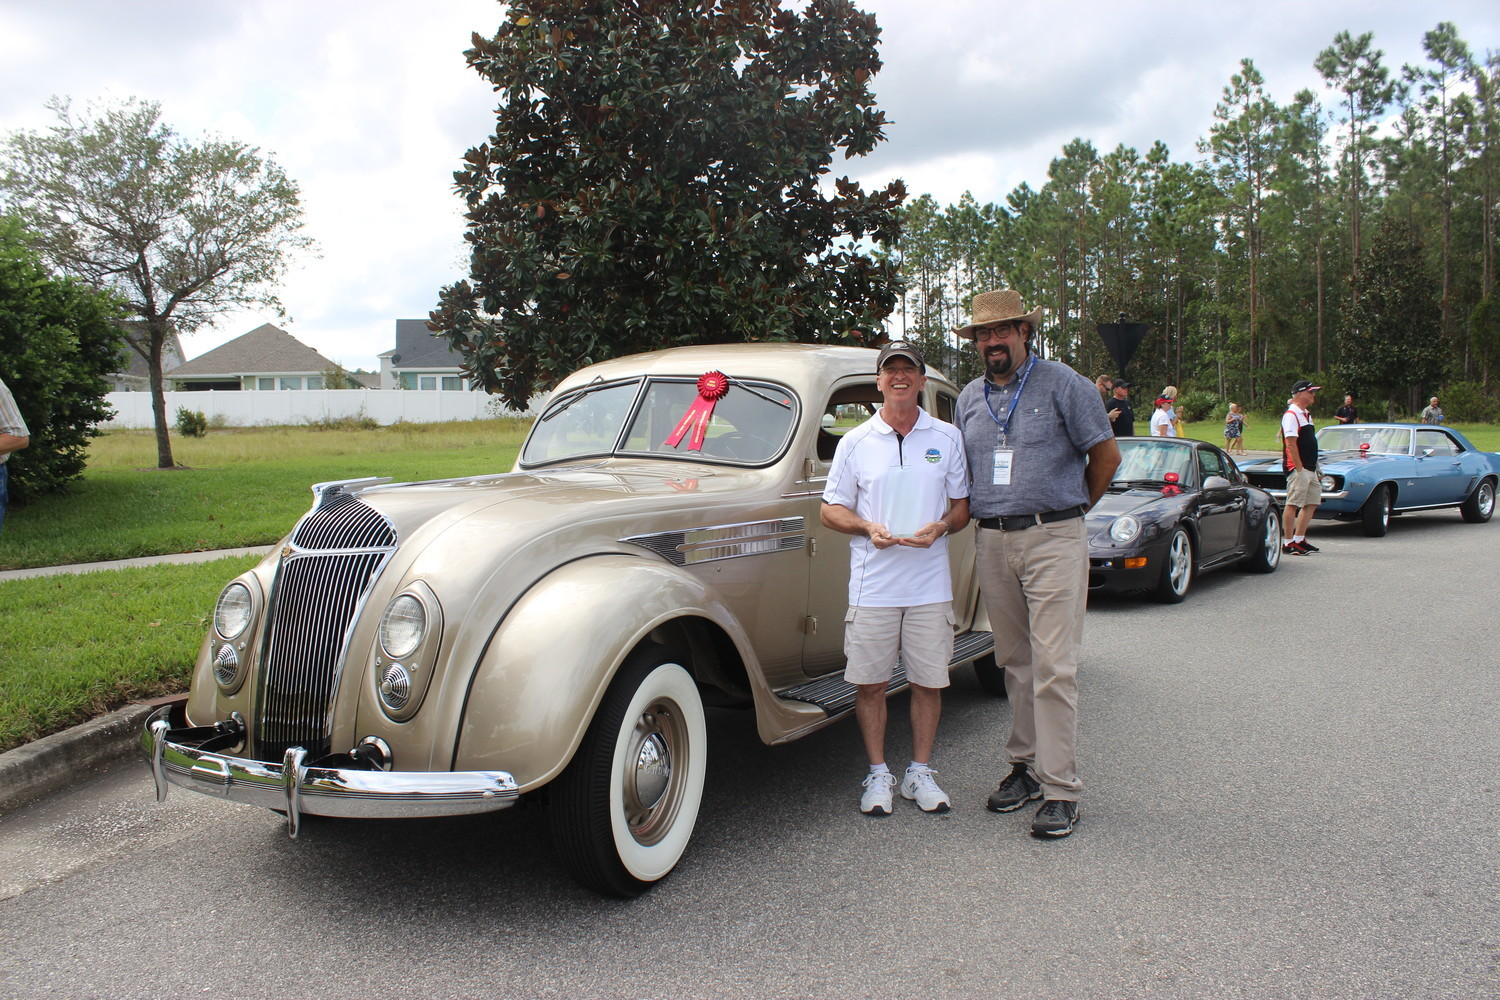 Mark Becker's 1936 Chrysler C-9 Airflow Coupe takes home the Wells Fargo Advisors Best in Show Classic award.